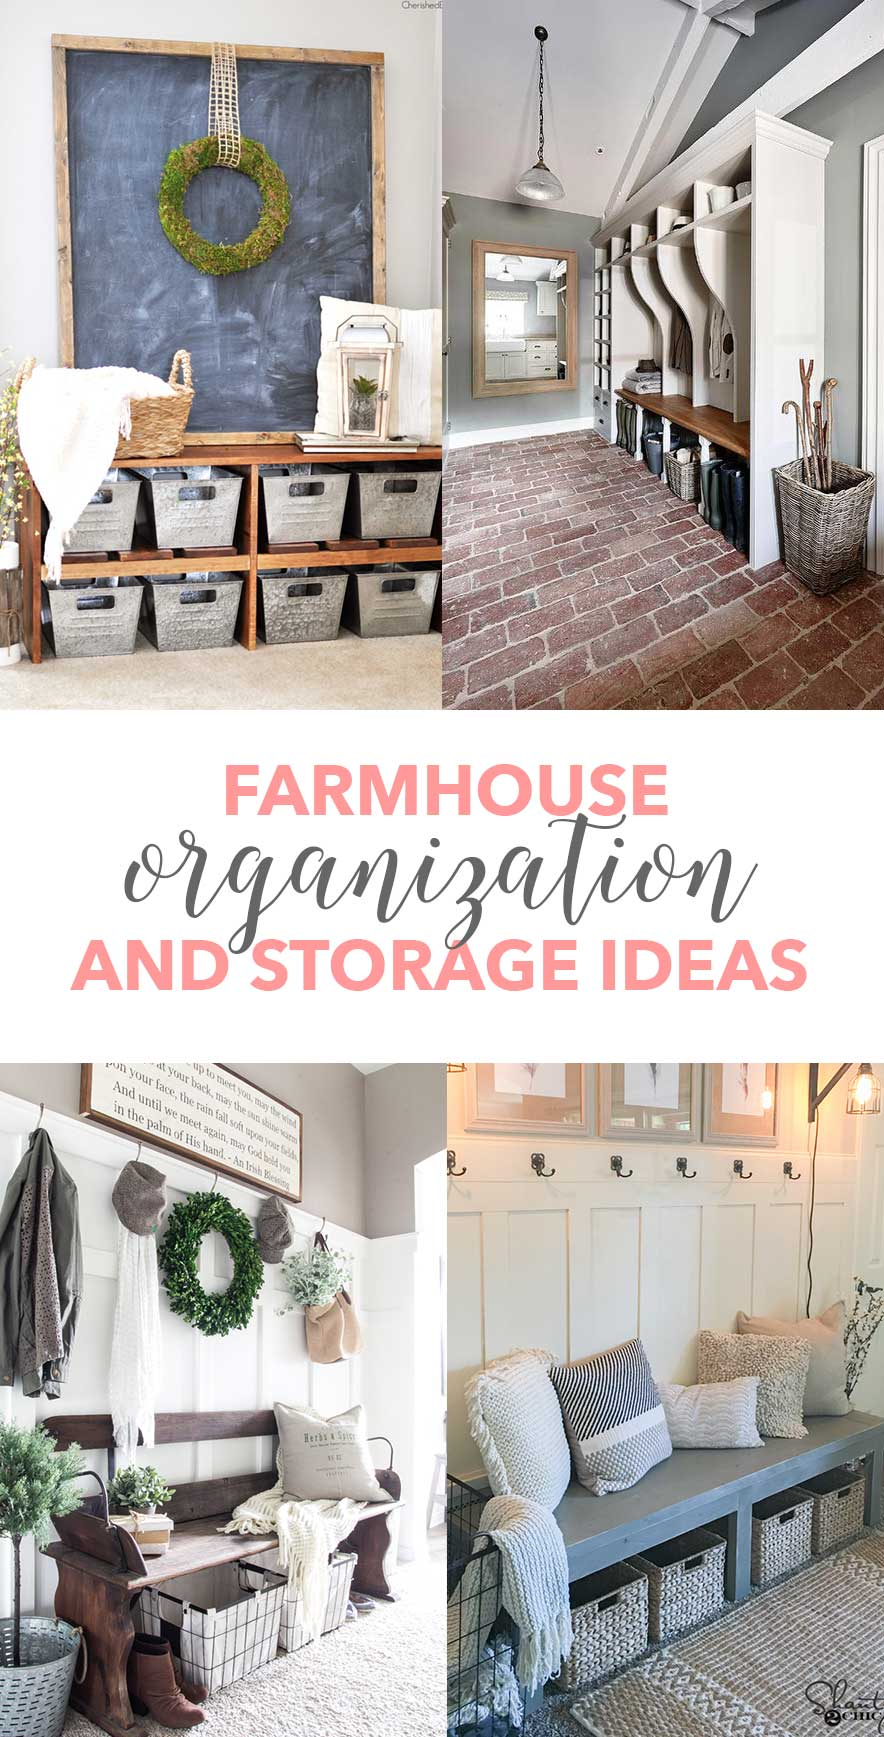 Farmhouse Organization and Storage Ideas